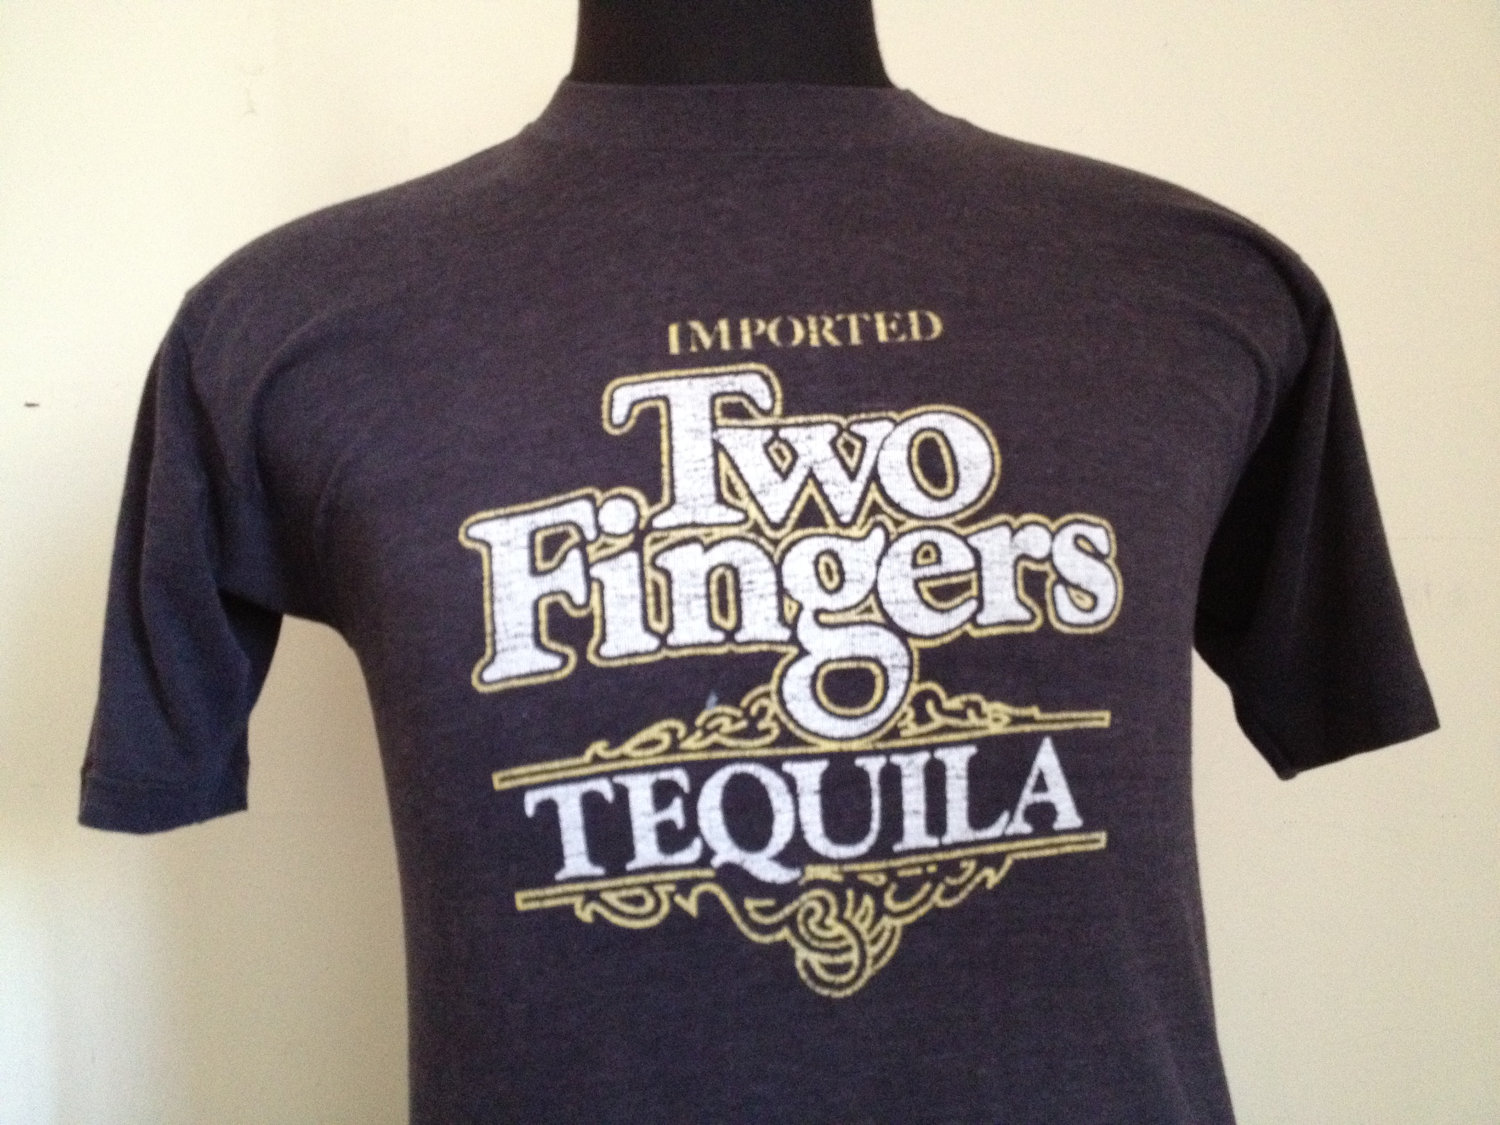 Tequila two fingers font or vector logo